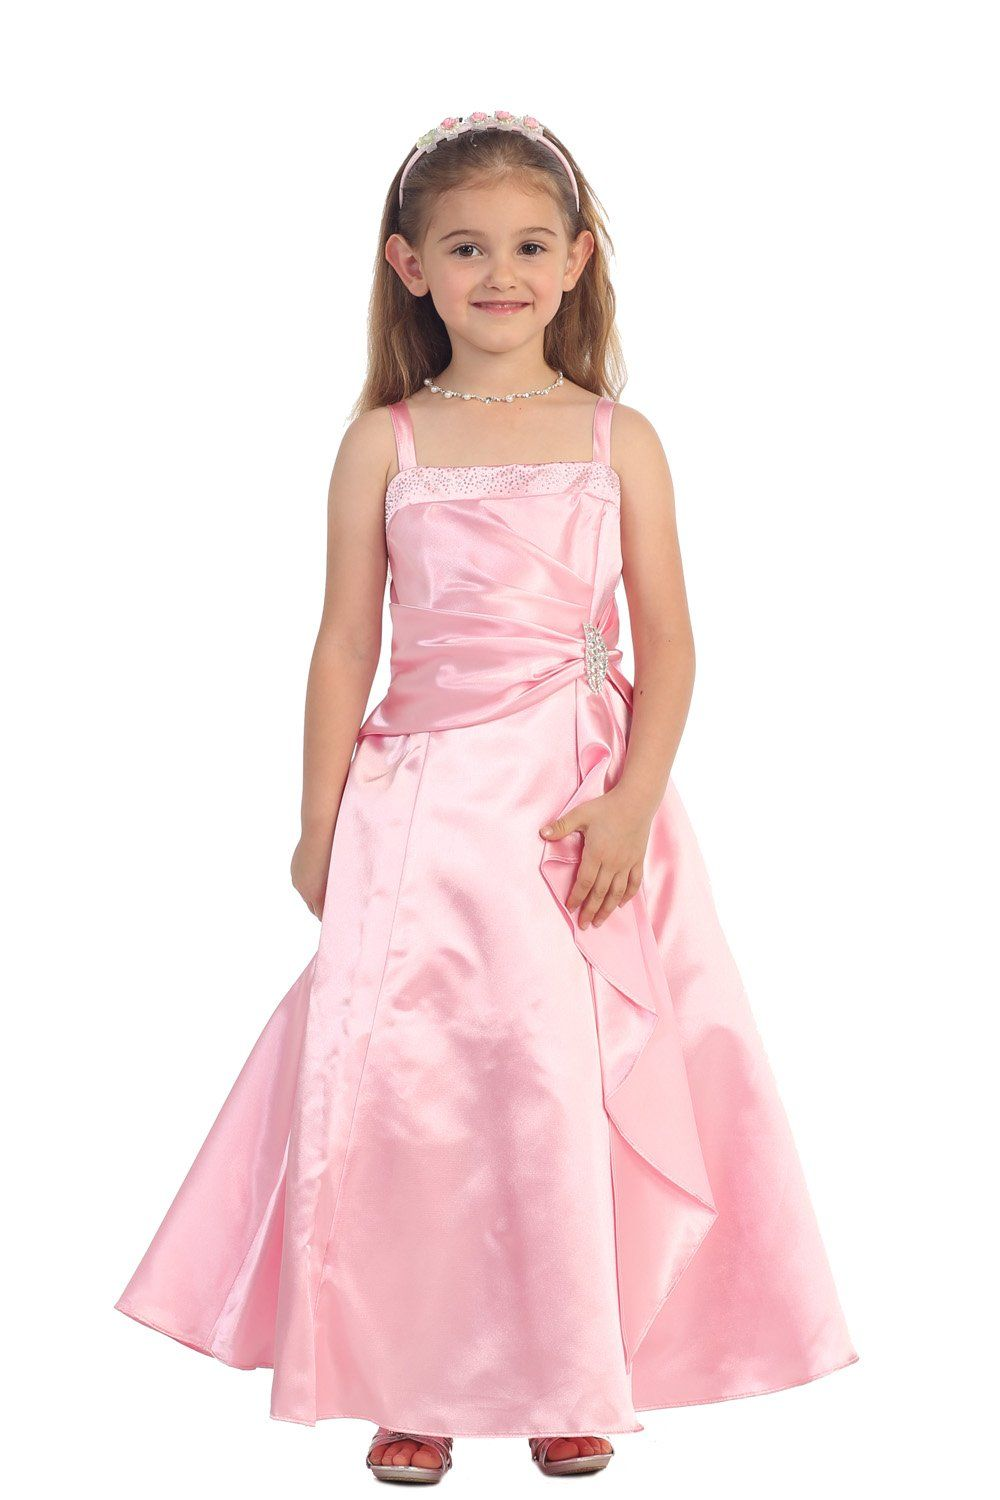 bf23487850 Pink Brilliant Satin Ruffle Detail A-line Flower Girl Dress with Sparkles